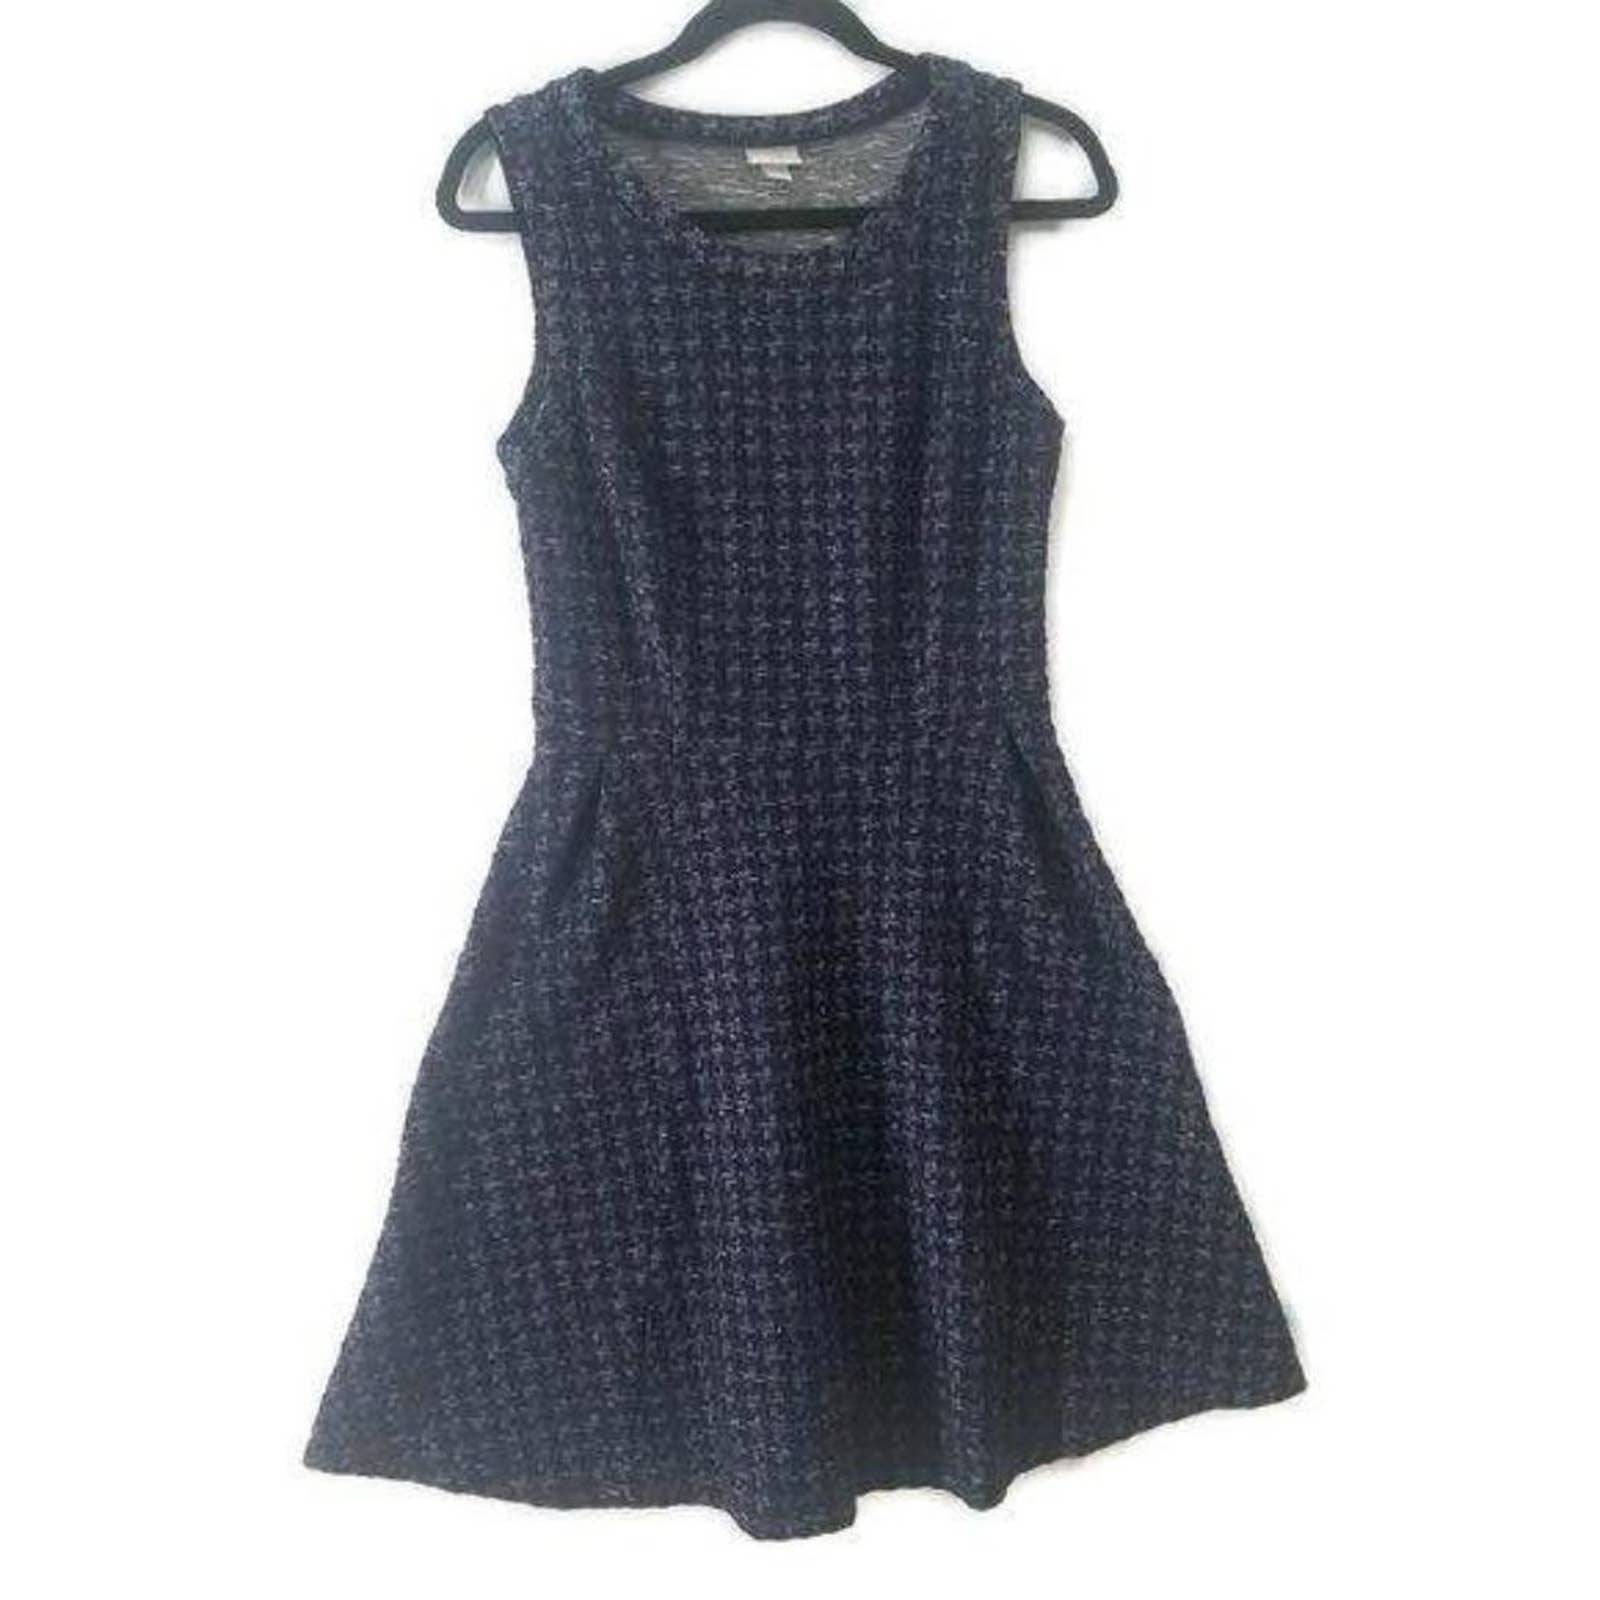 Merona S Blue Fit Flare Sleeveless Dress